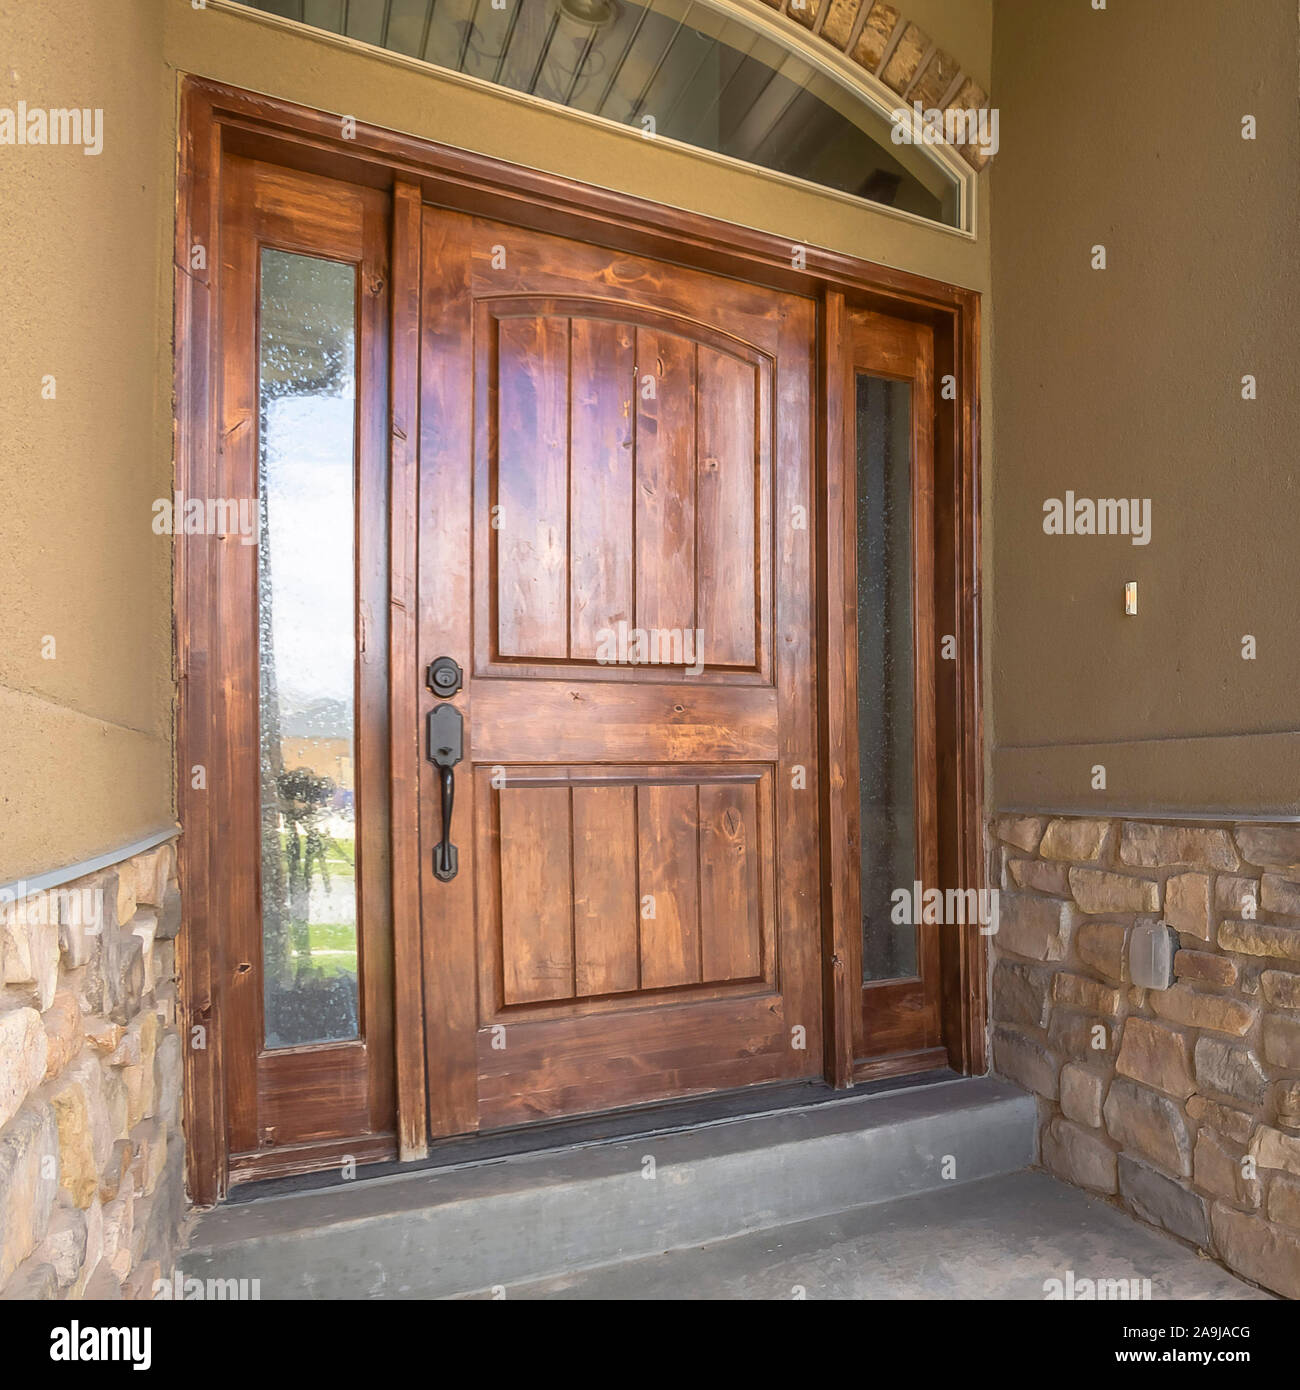 Square Frame Home Porch And Brown Wood Front Door With Sidelights And Arched Transom Window Stock Photo Alamy